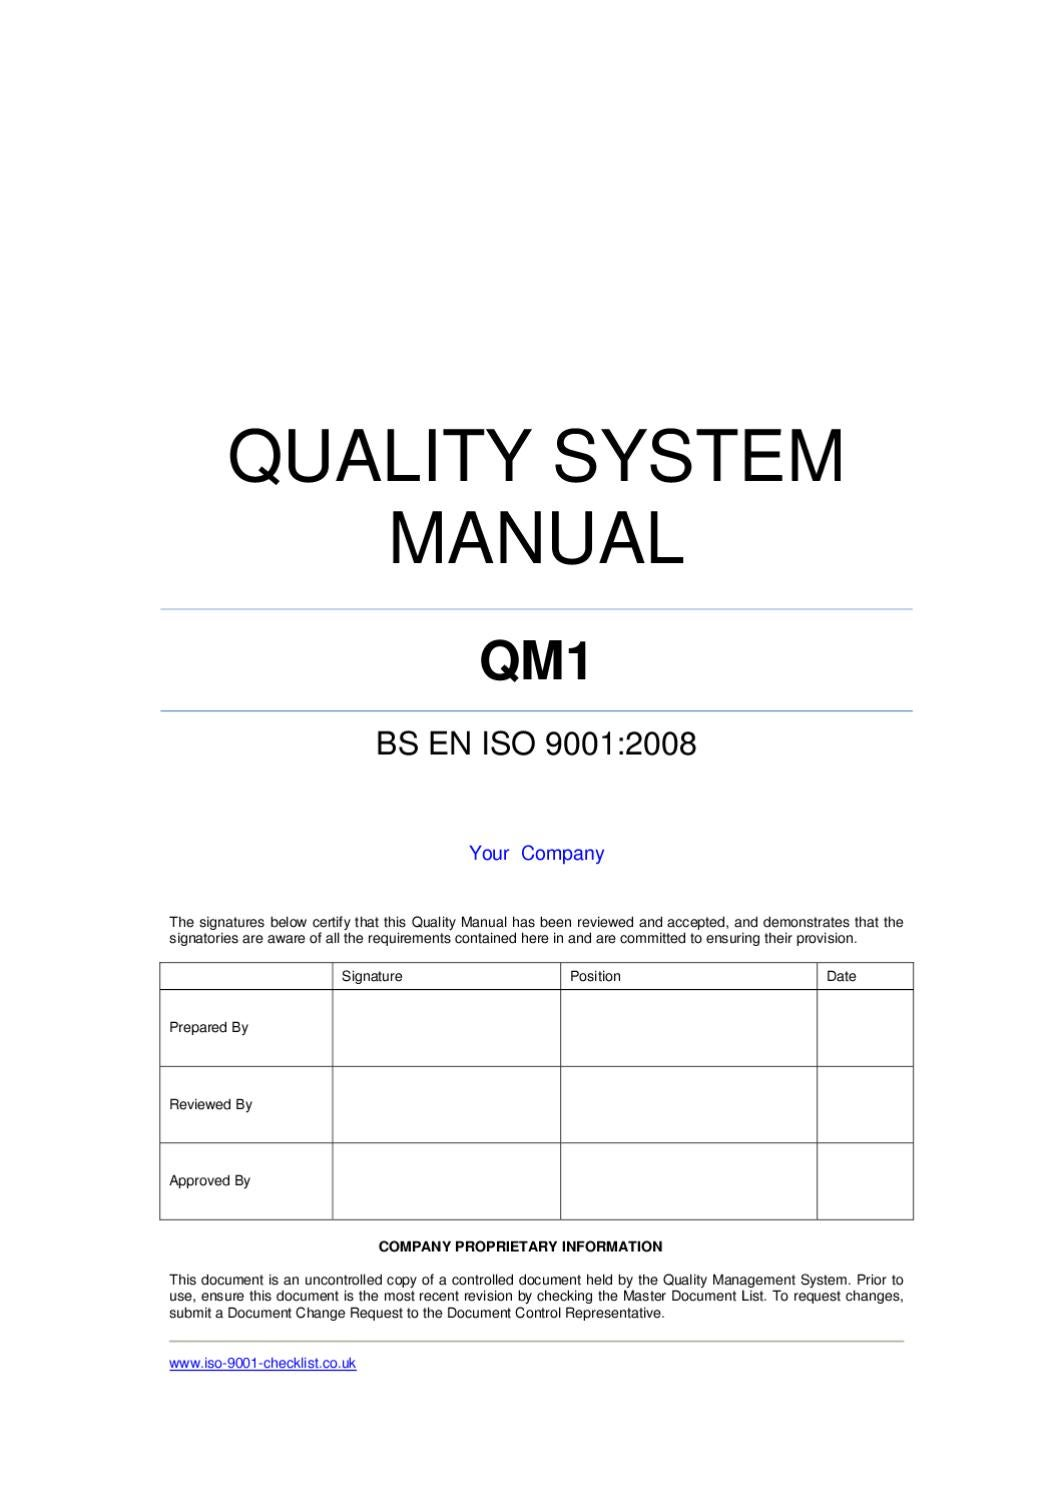 Quality Manual Solution Example By Iso 9001 Checklist Issuu